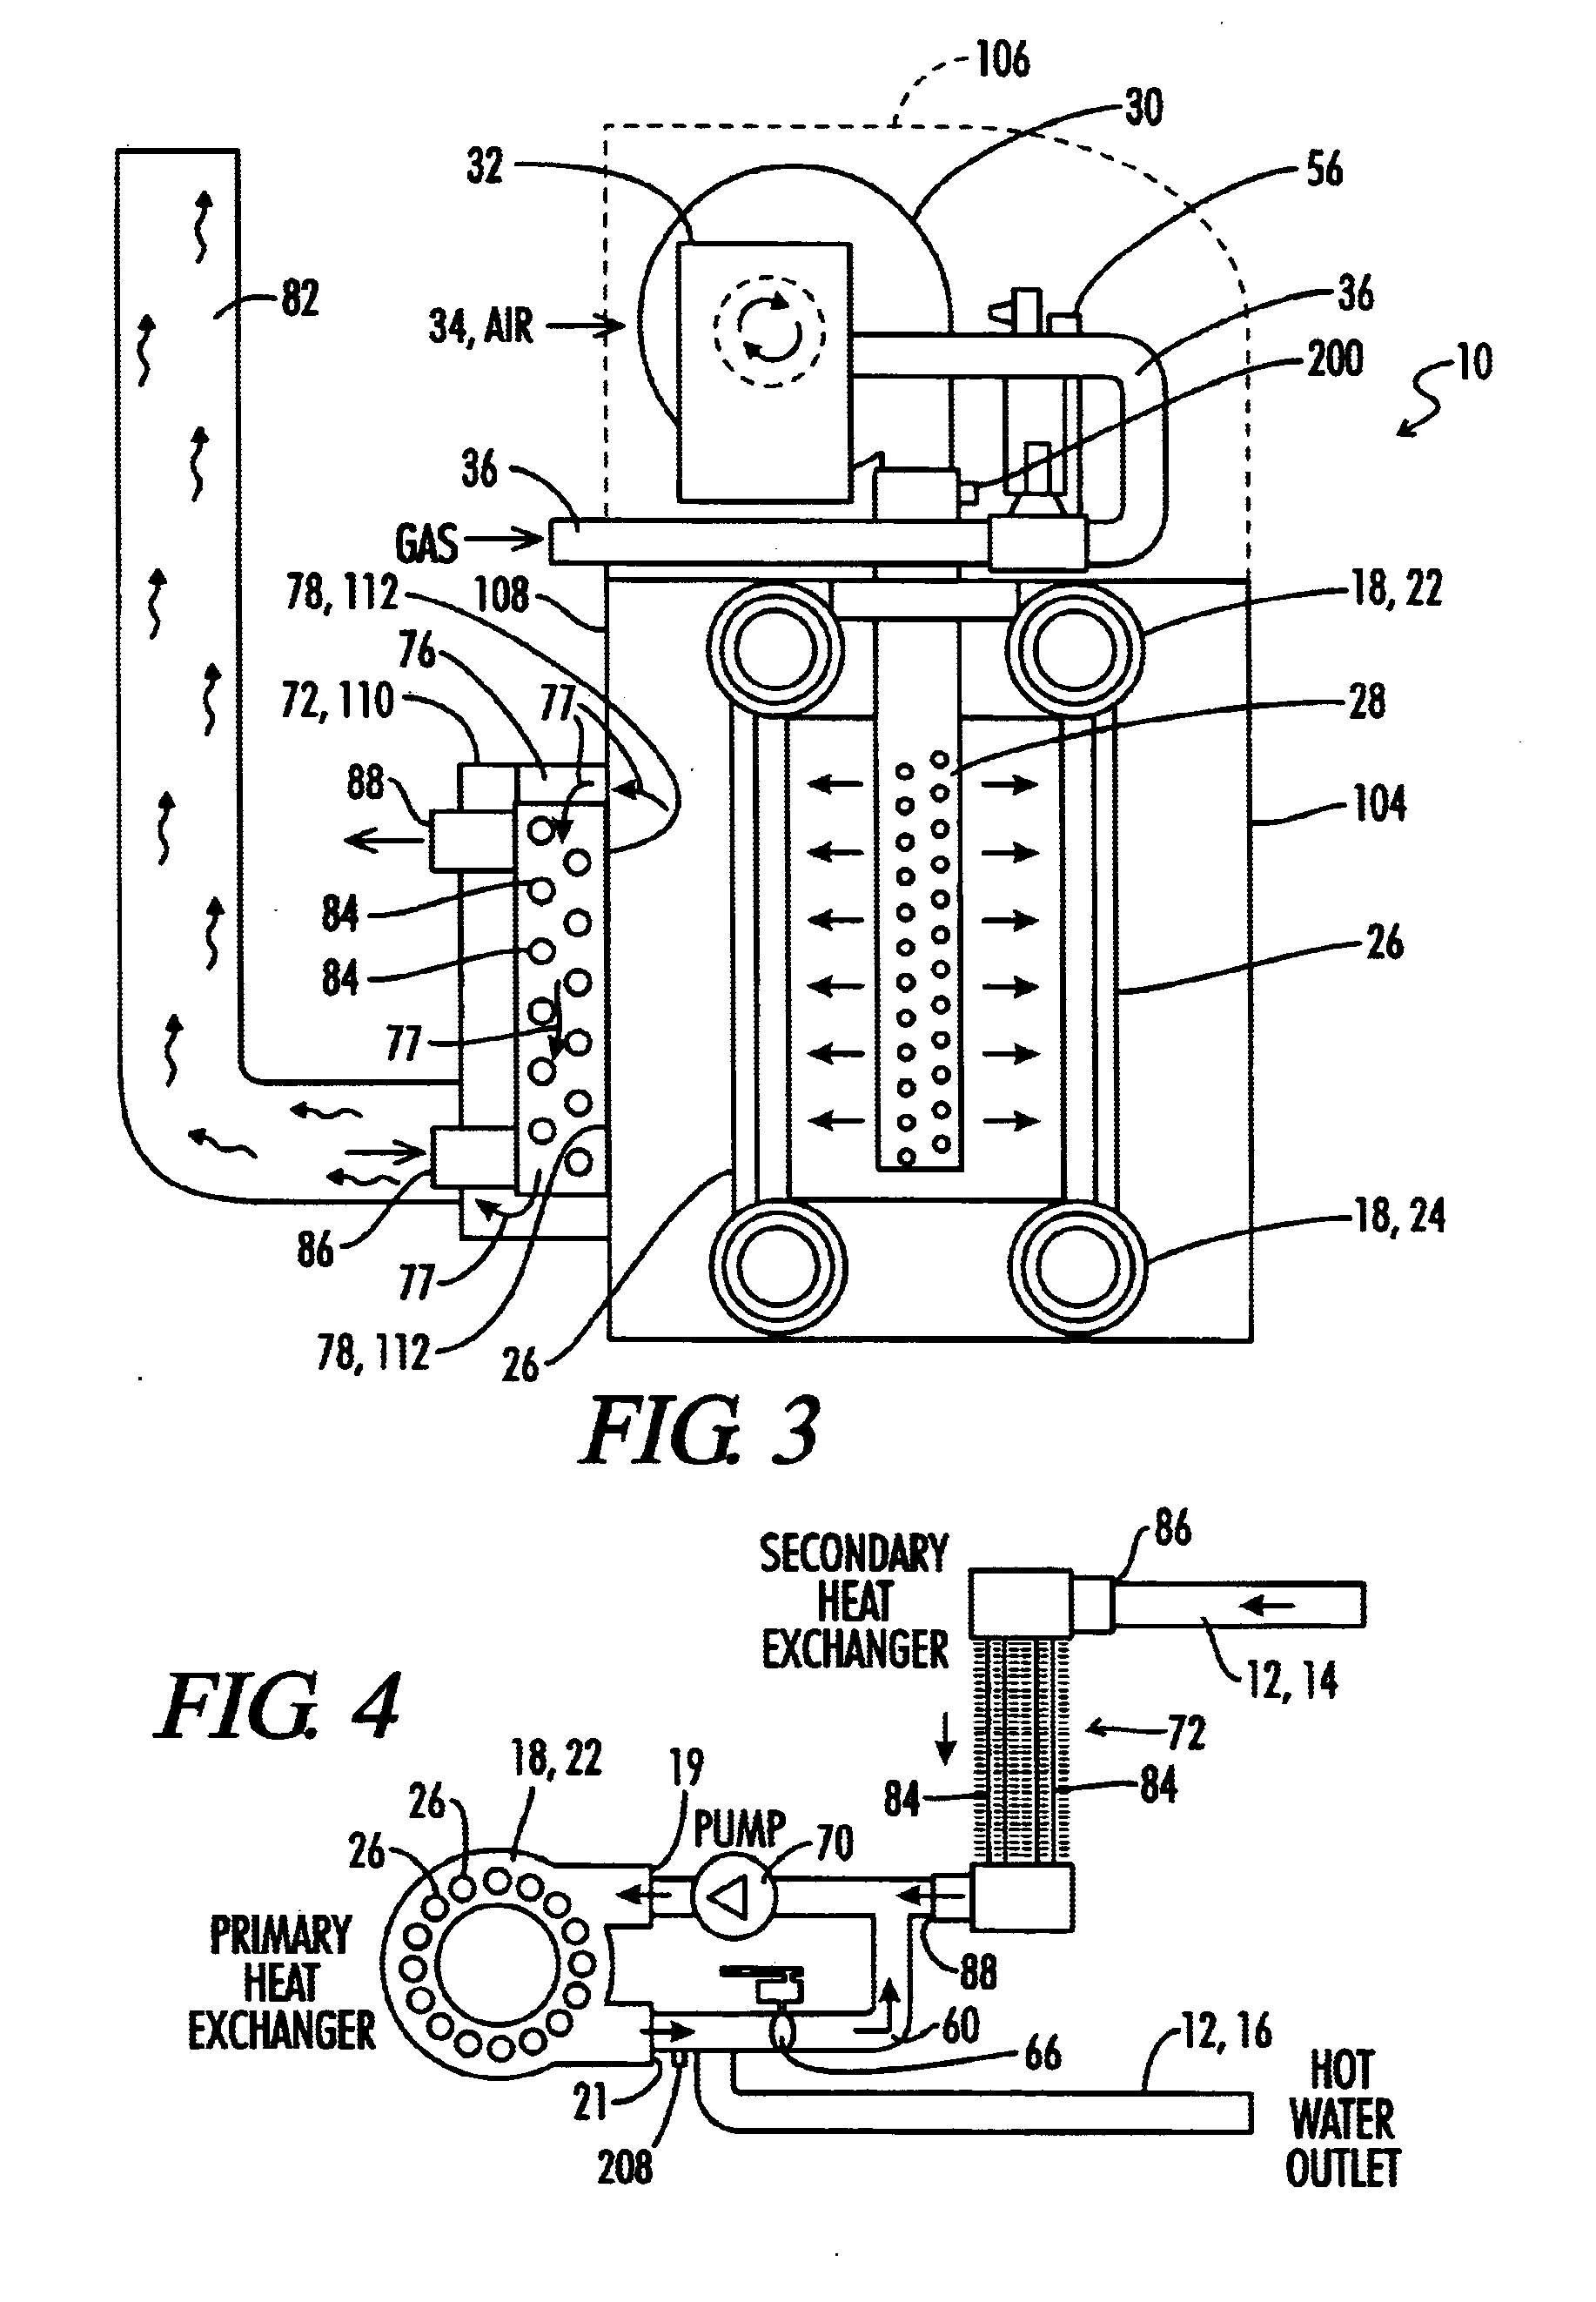 patent us6694926 - water heater with continuously variable air and fuel input